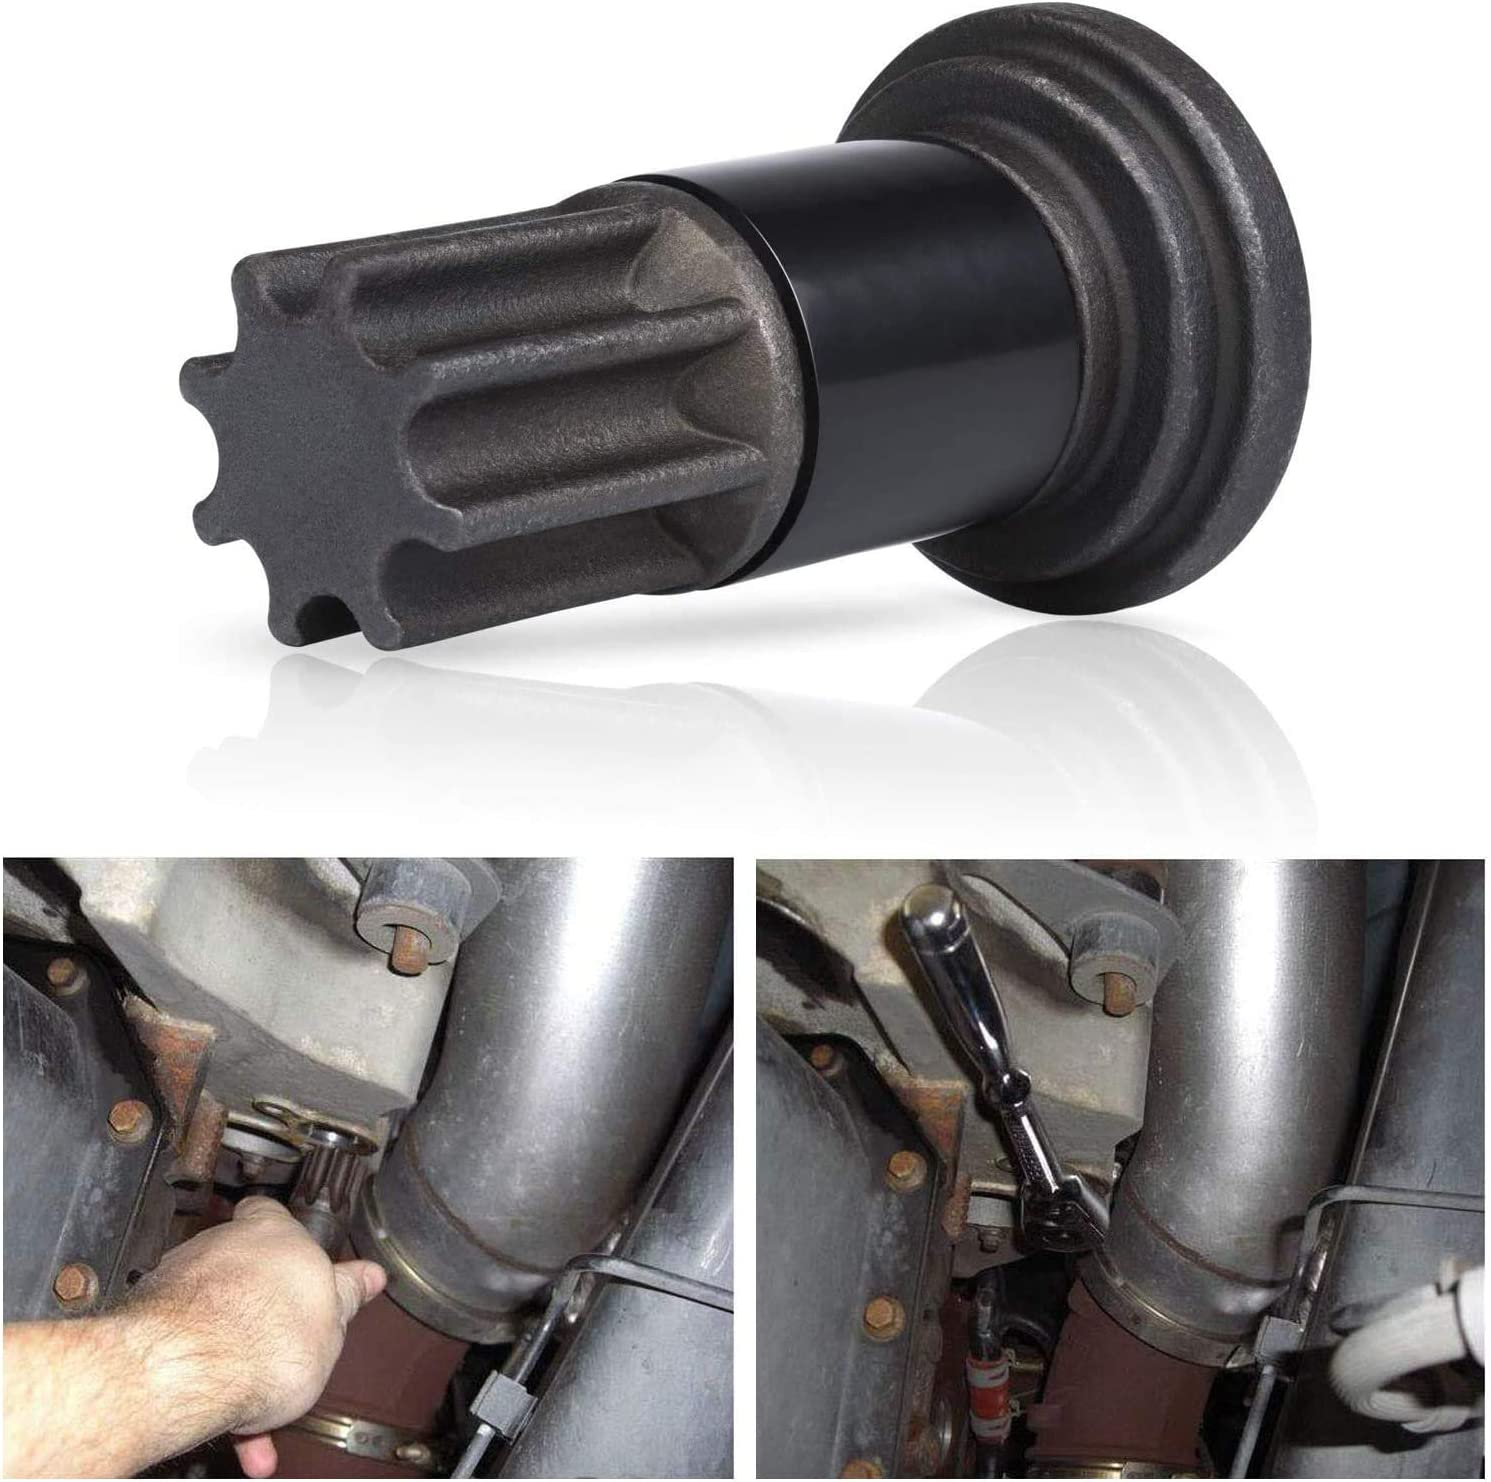 5.9L 6.7L /& 8.3L Diesels Engines Matler for Cummins Engine Barring//Rotating Tool for Cummins B//C Series and Dodge Pickups 3.9L